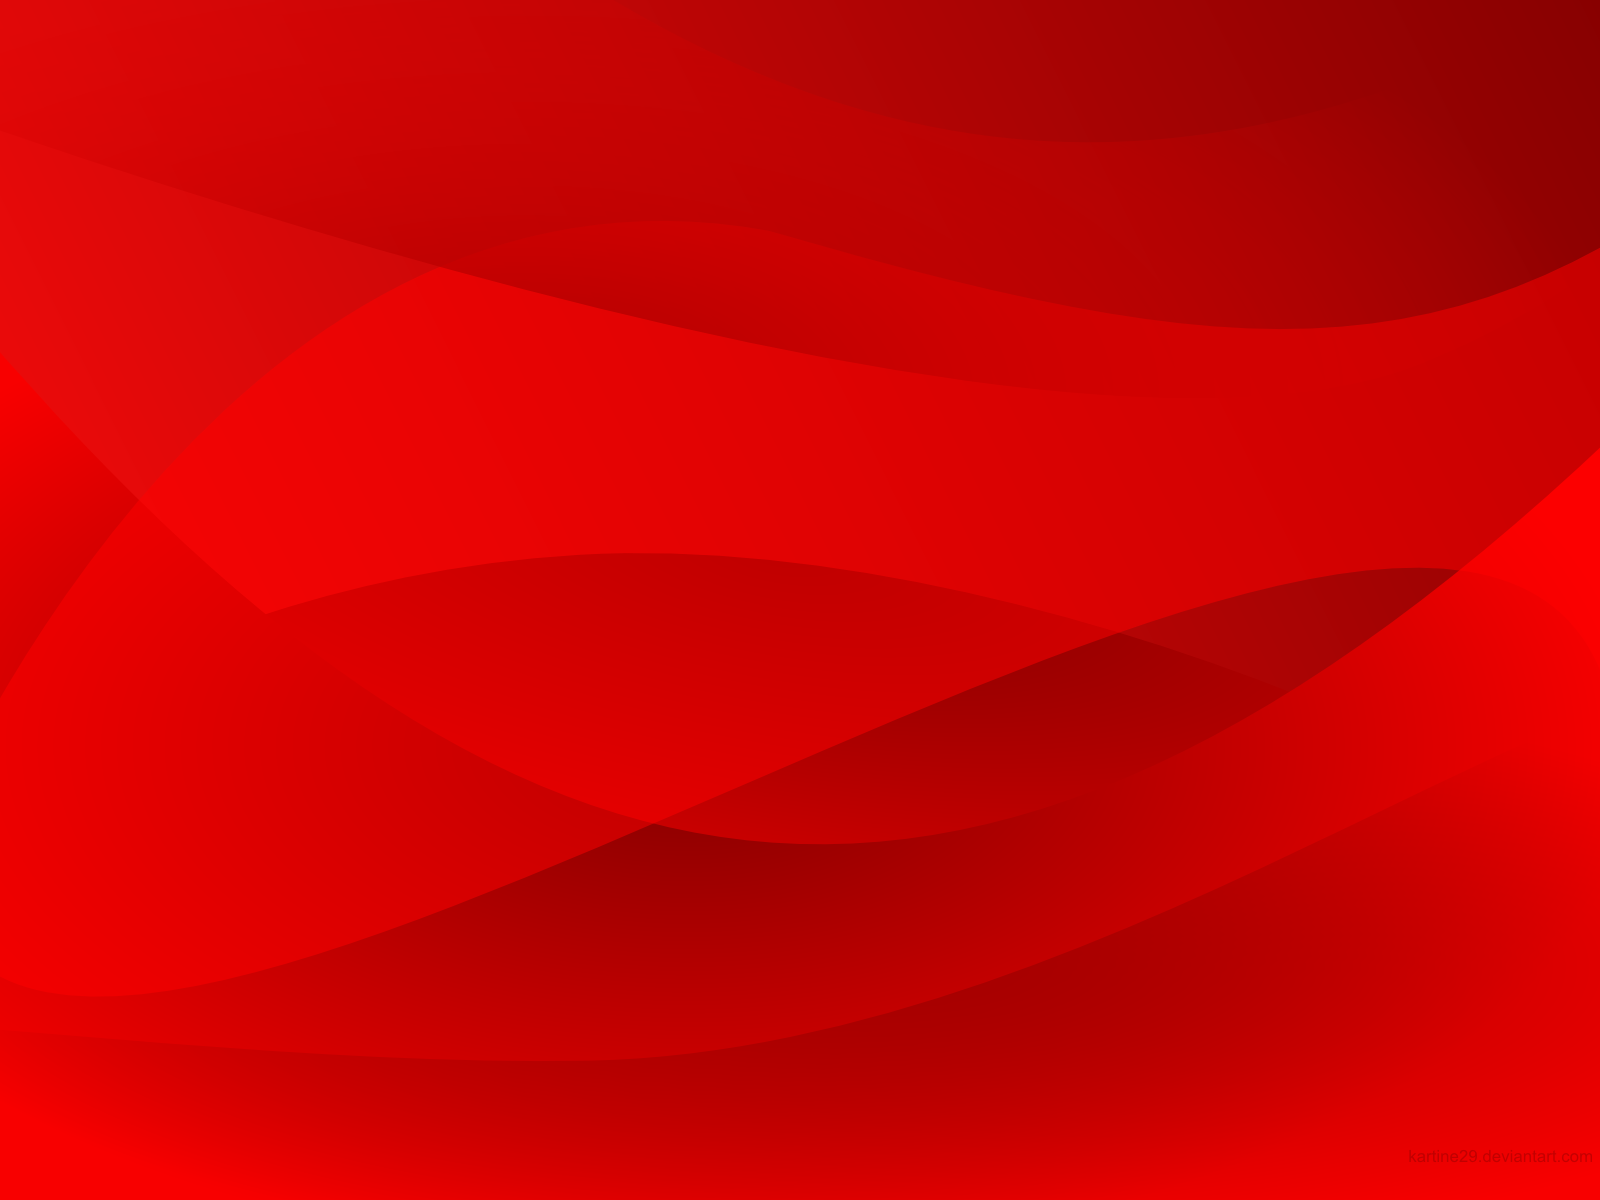 red abstract 1600x1200 by kartine29 customization wallpaper abstract ...: kartine29.deviantart.com/art/red-abstract-1600x1200-157979698